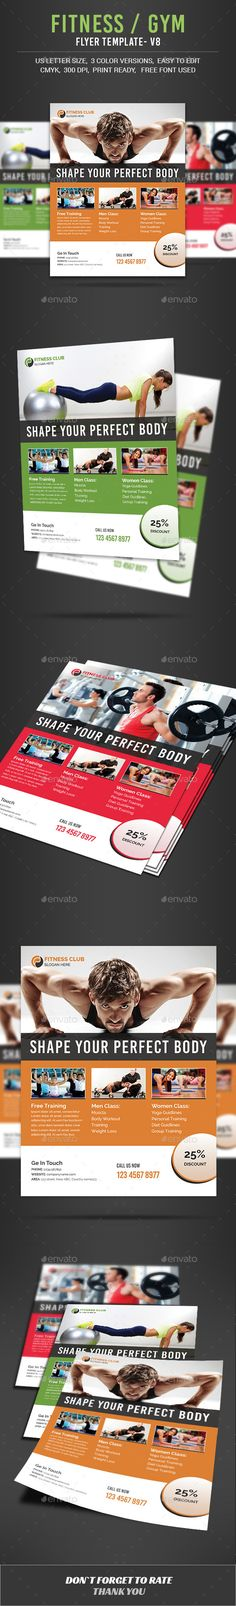 Zumba Fitness Class Flyer Template Zumba fitness, Flyer template - Gym Brochure Templates